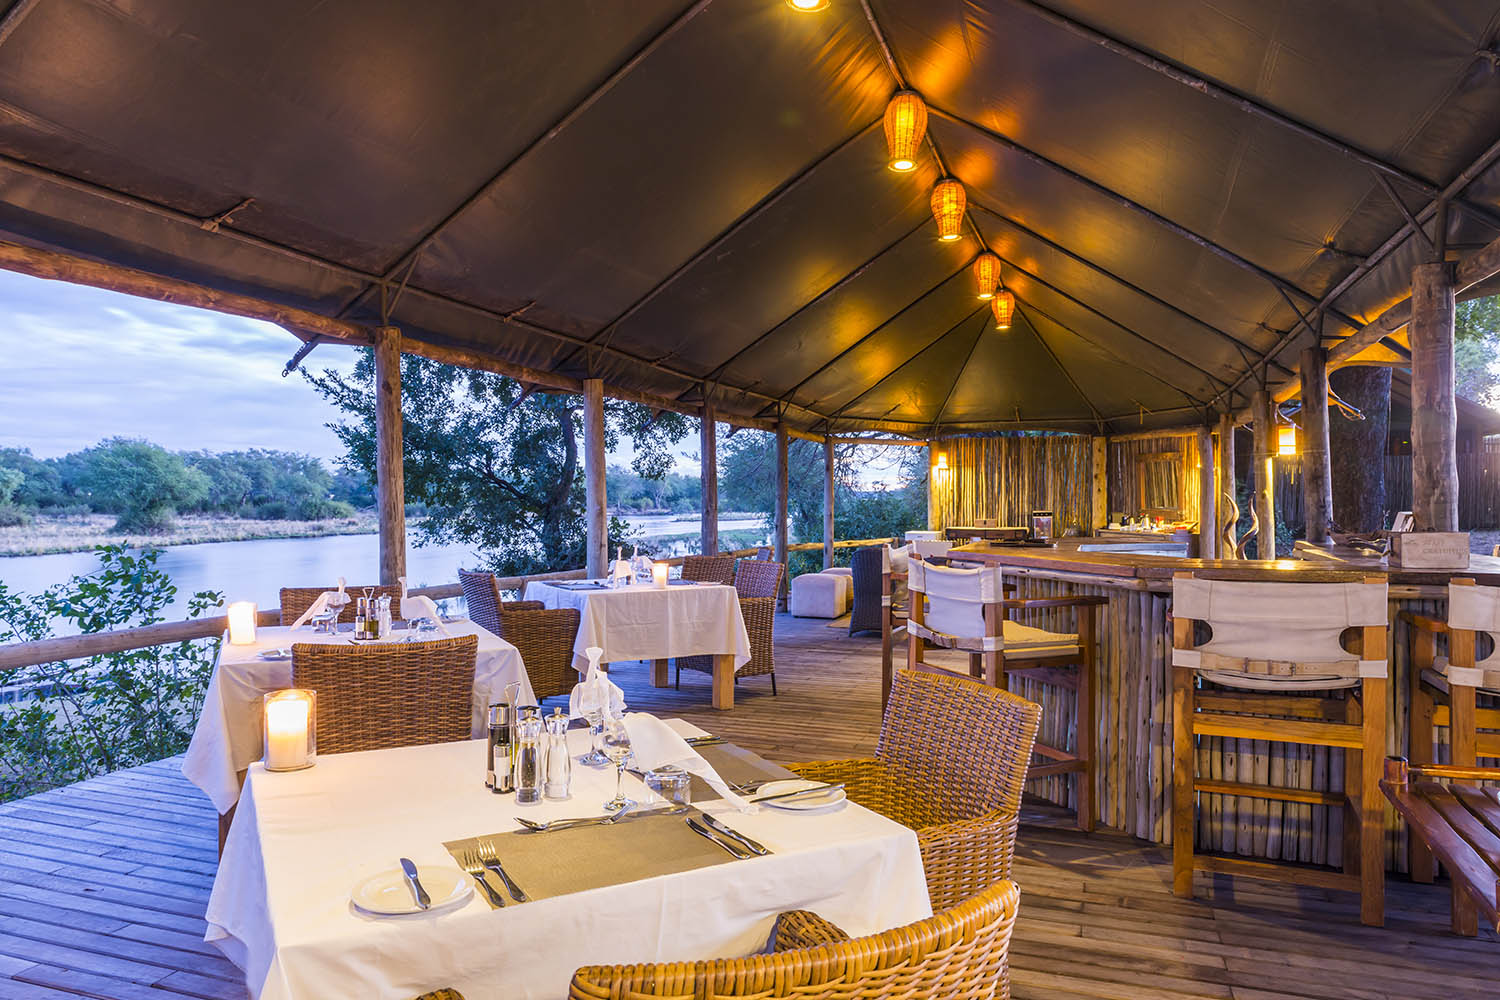 amanzi-lodge-zambia-in-style-safari-packages-lodges-lower-zambezi-intimate-safari-fine-cuisine